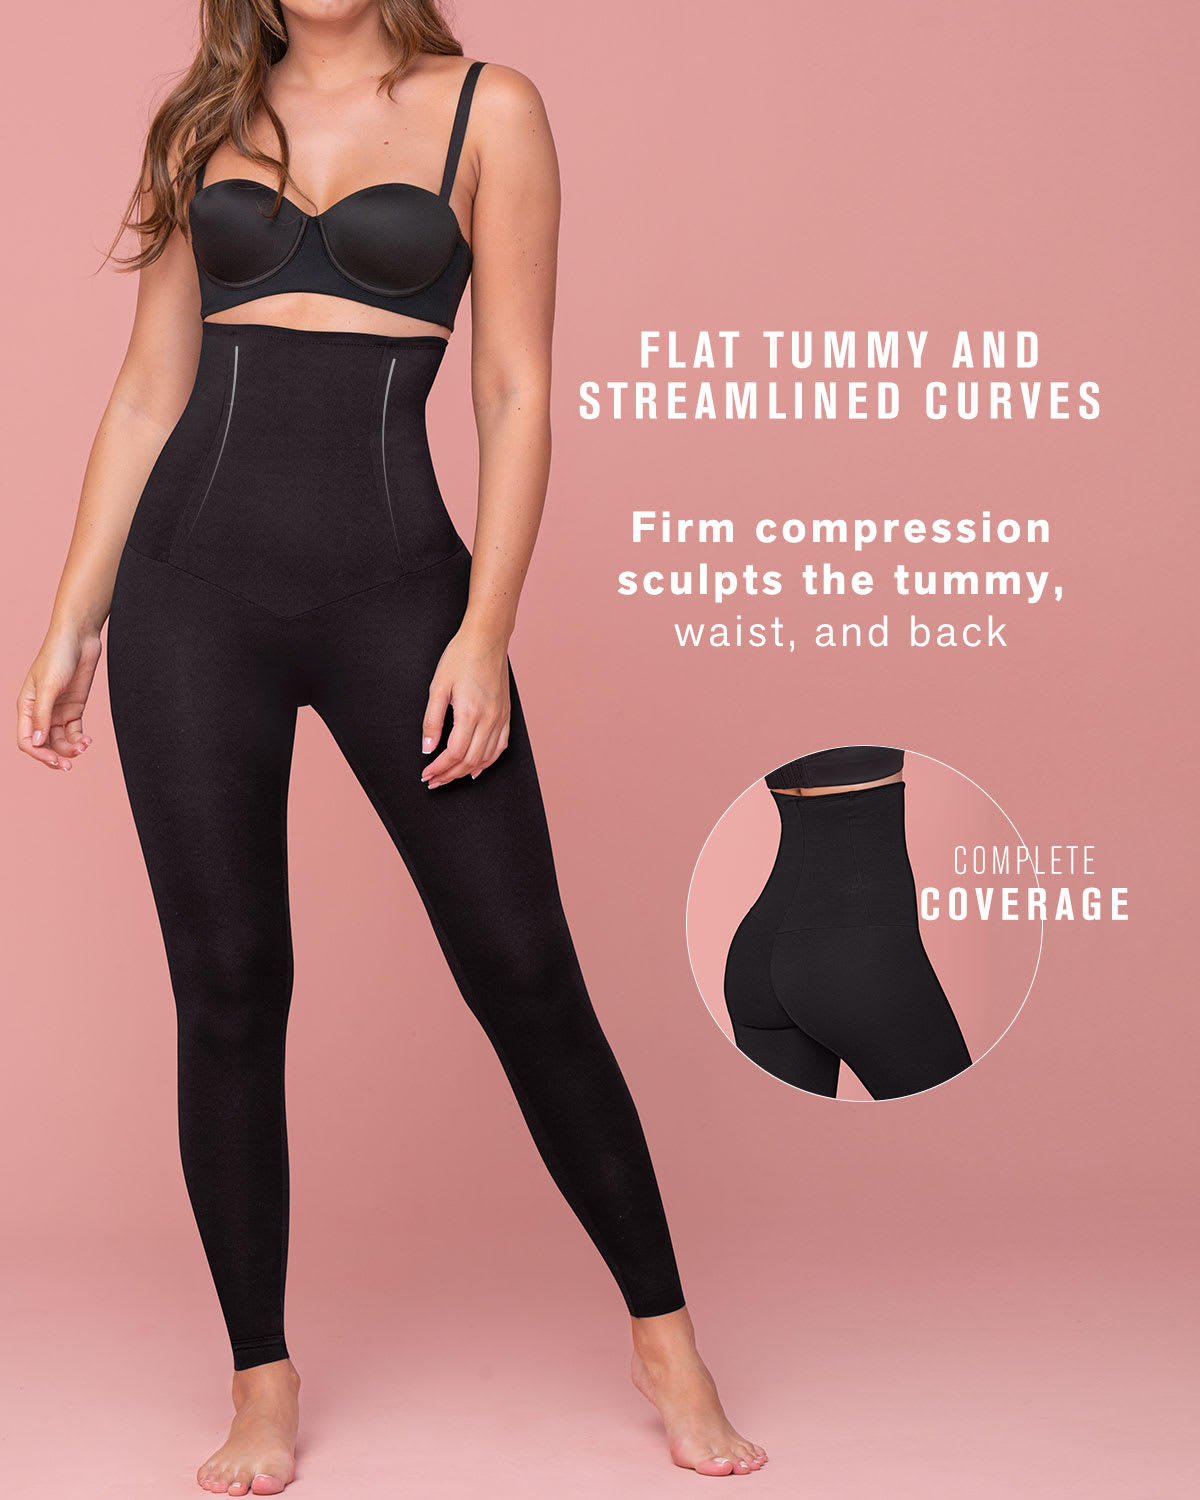 Extra High Waisted Firm Compression Legging Activelife Leonisa